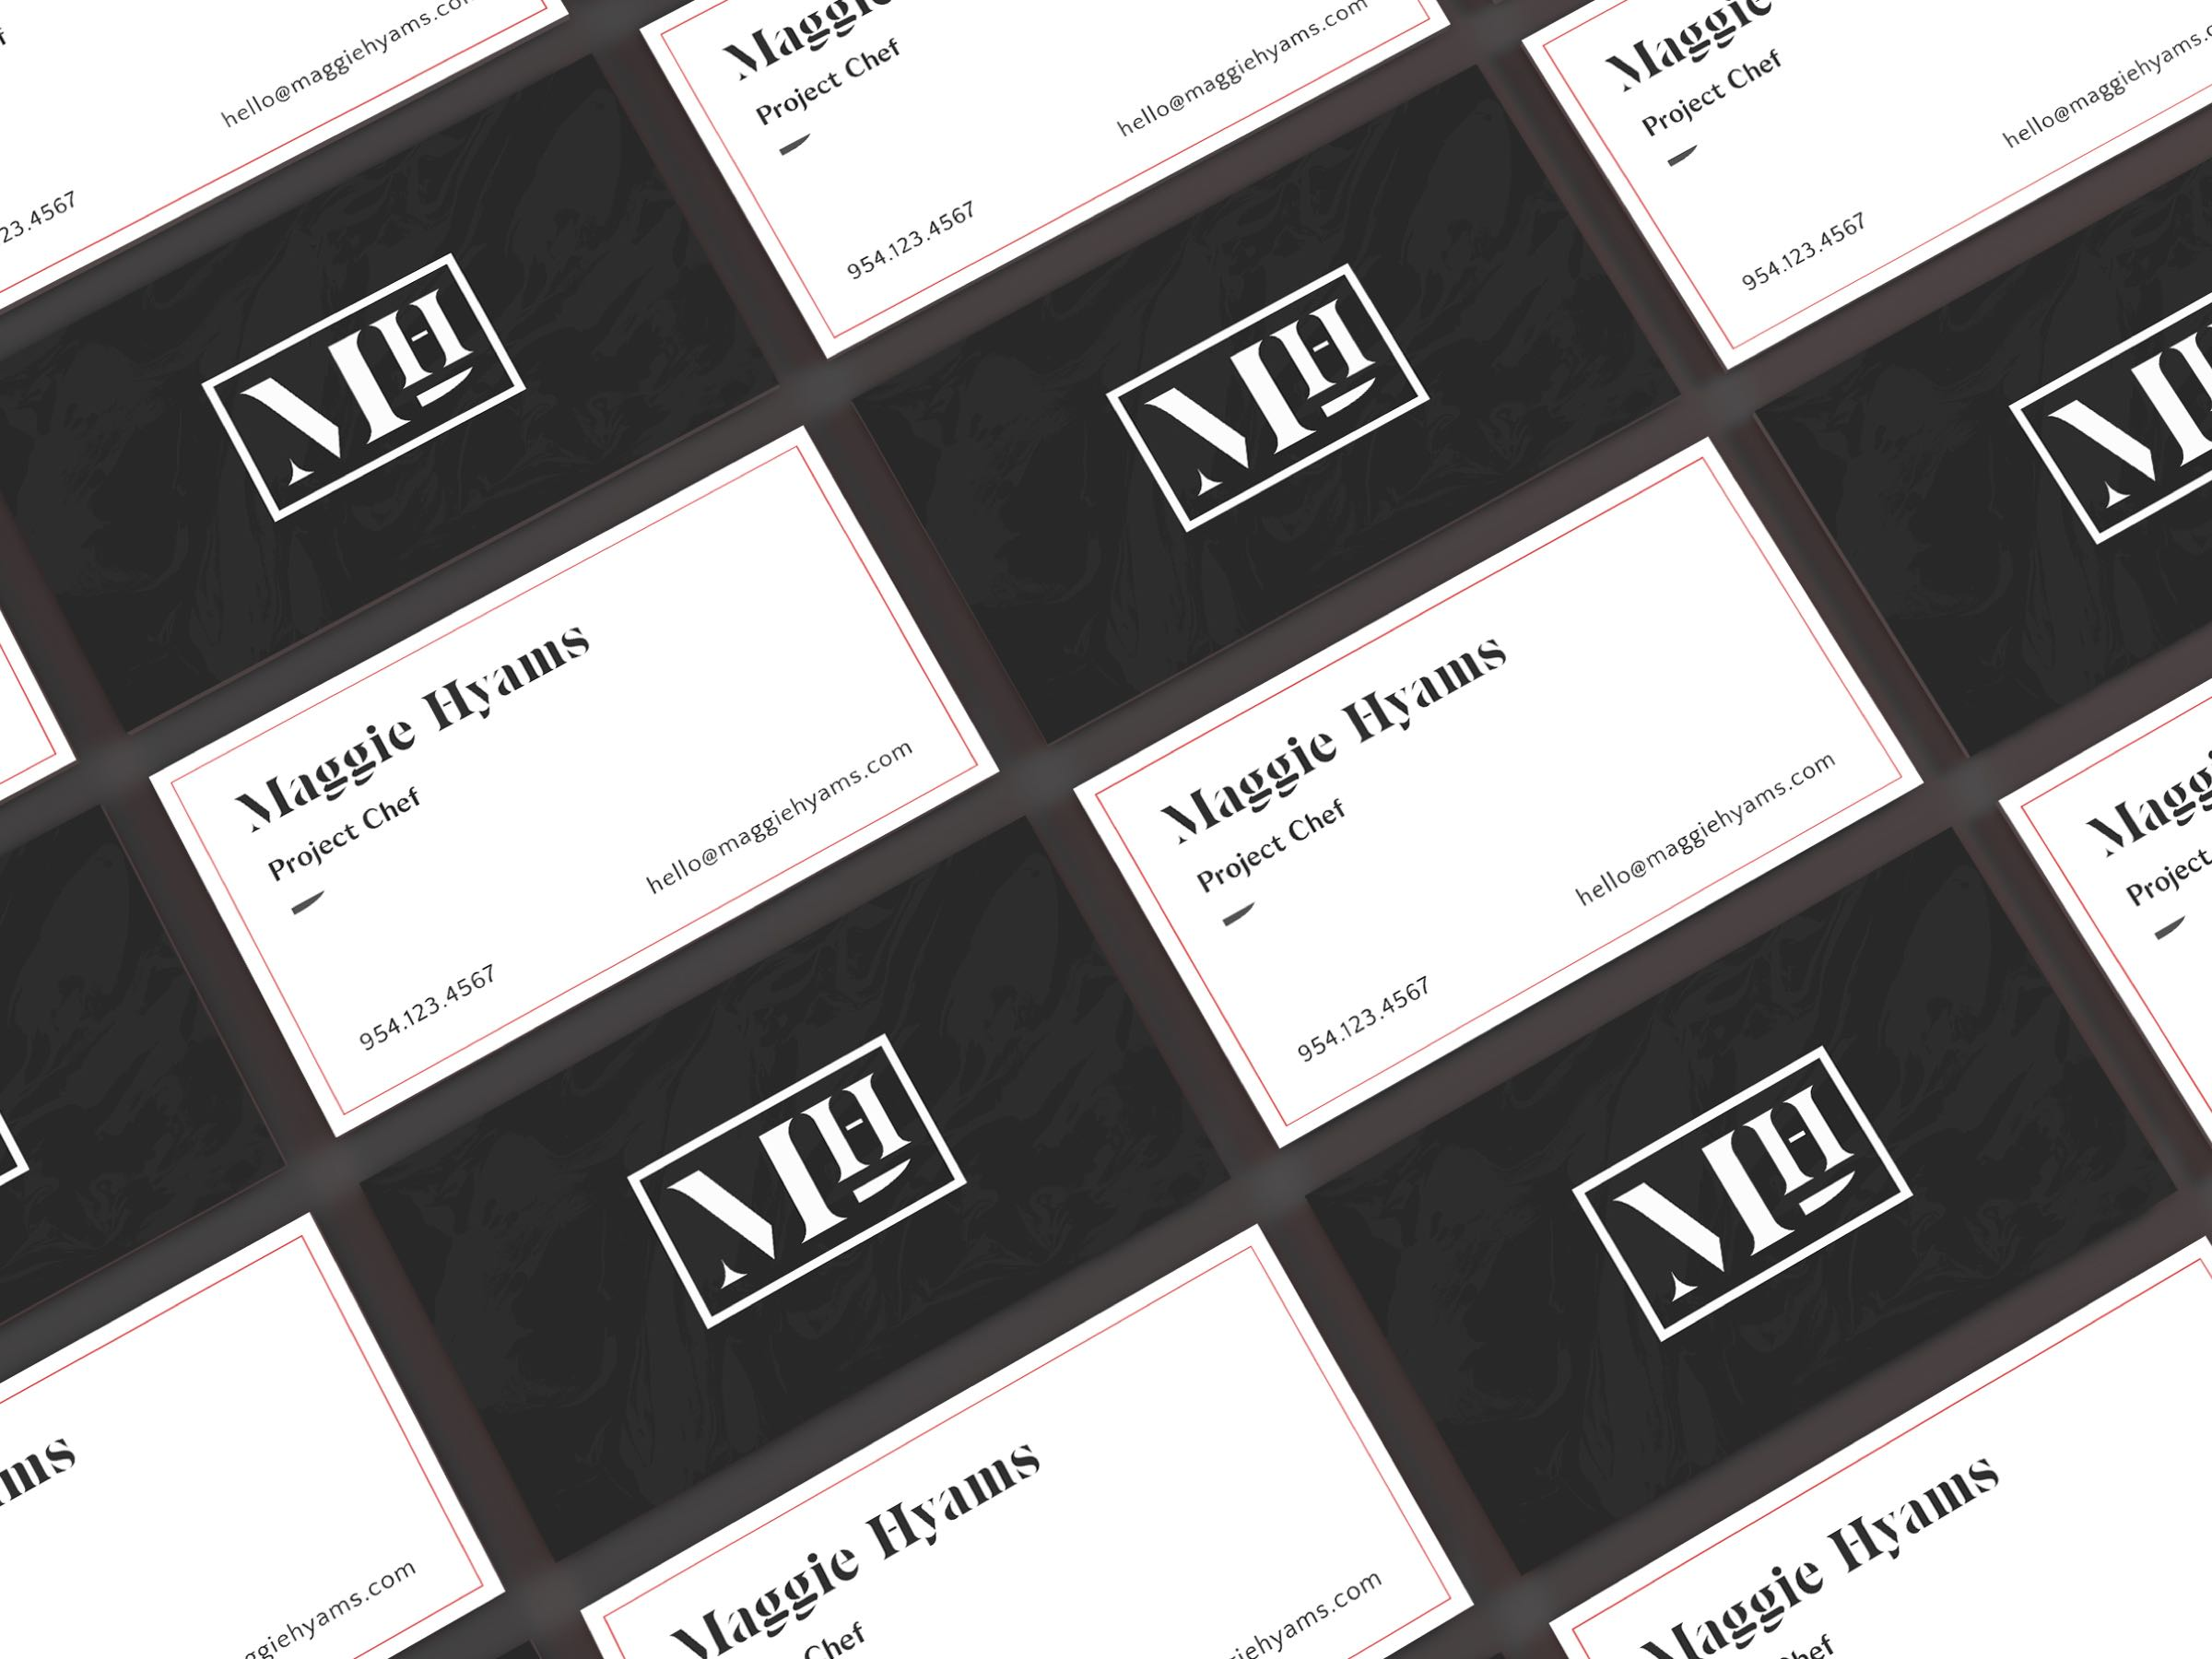 Maggie Hyams business cards